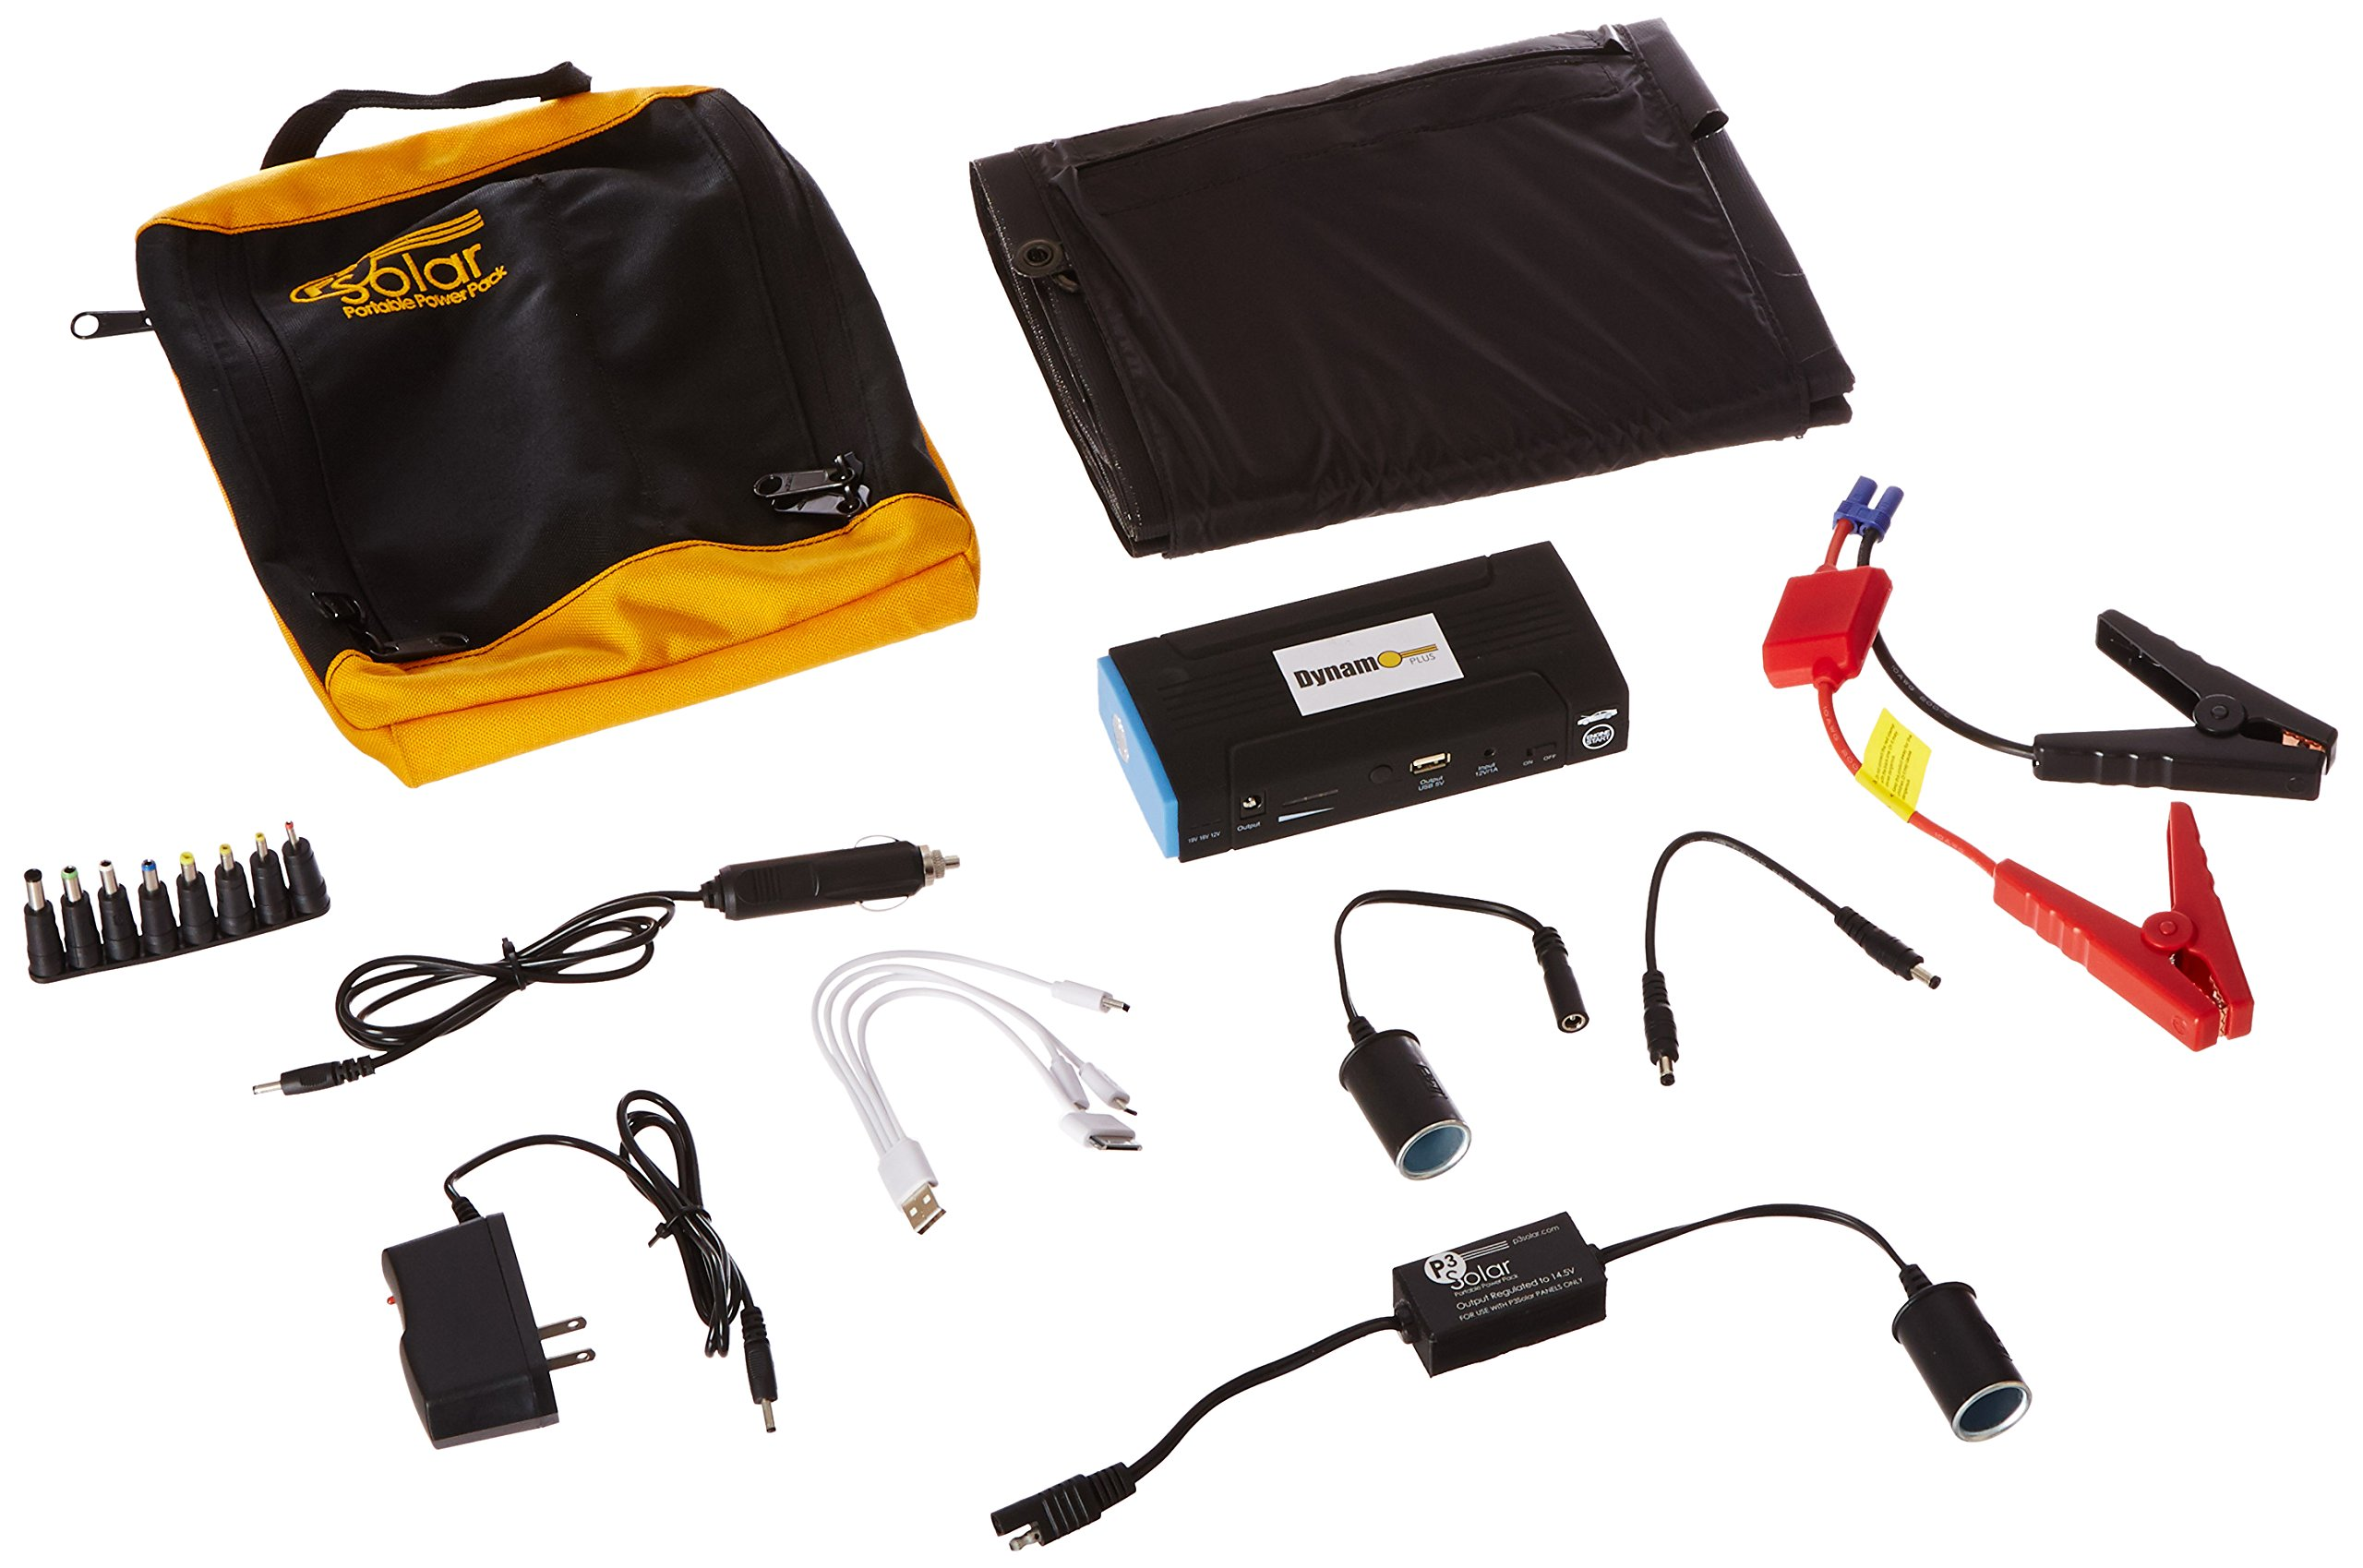 P3Solar Dynamo Plus - Lightweight Portable Battery Pack with foldable solar panel by P3 Solar Dynamo Plus